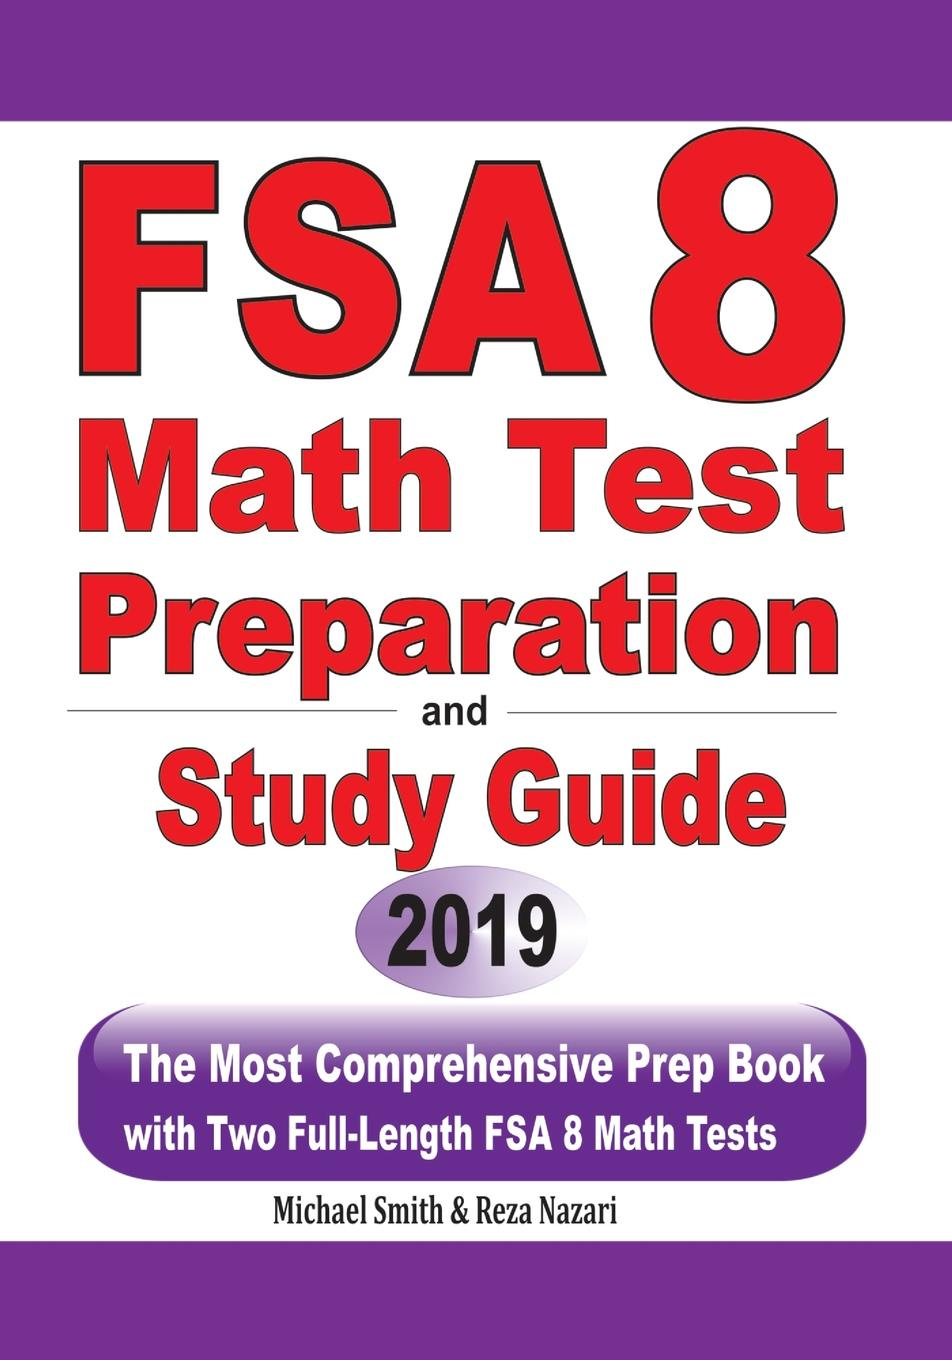 Michael Smith, Reza Nazari FSA 8 Math Test Preparation and Study Guide. The Most Comprehensive Prep Book with Two Full-Length FSA Math Tests